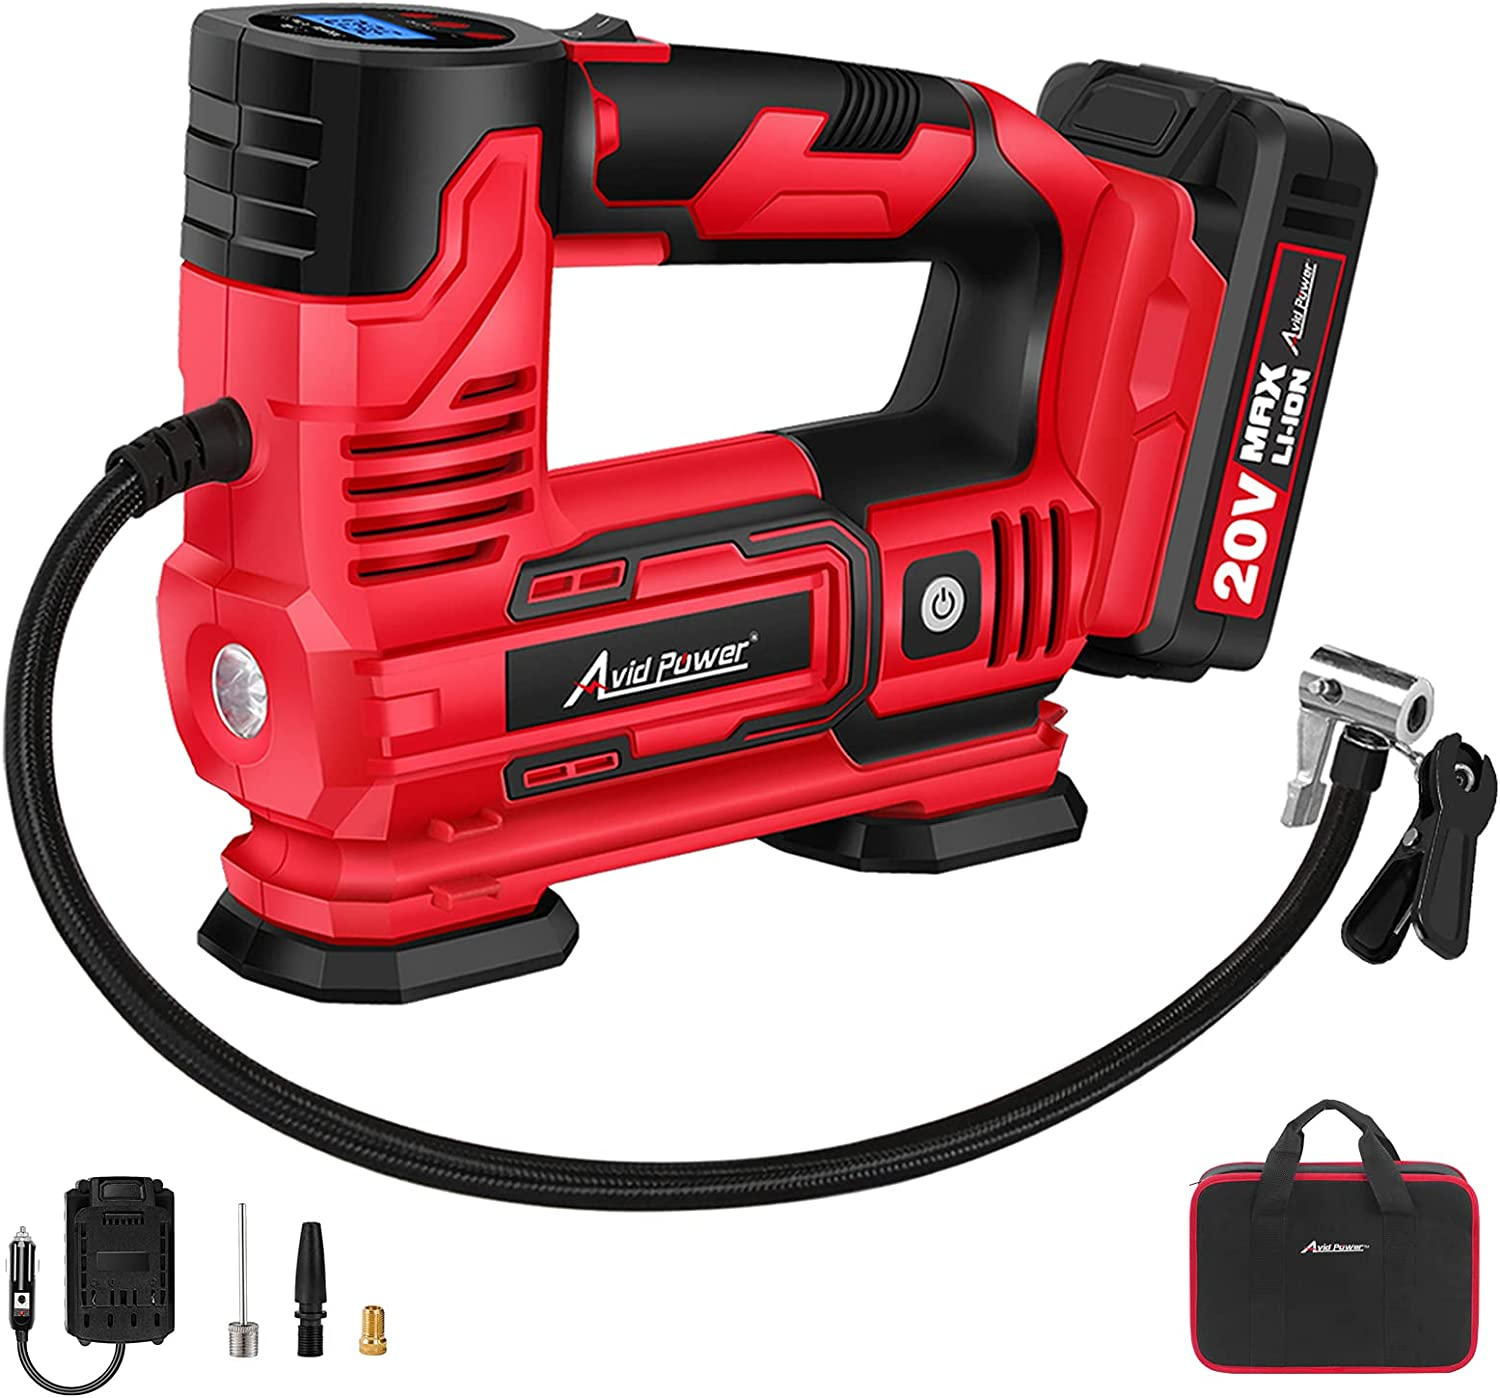 AVID Large special price !! POWER Tire Inflator Portable 20V C Compressor Air Cordless Oakland Mall